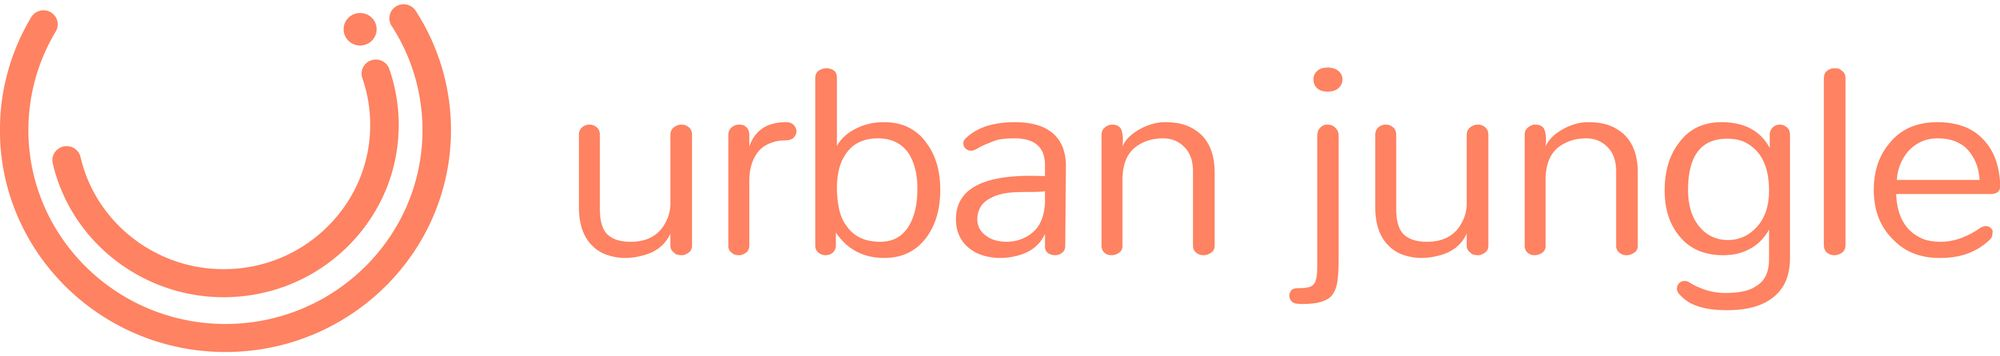 The Urban Jungle logo